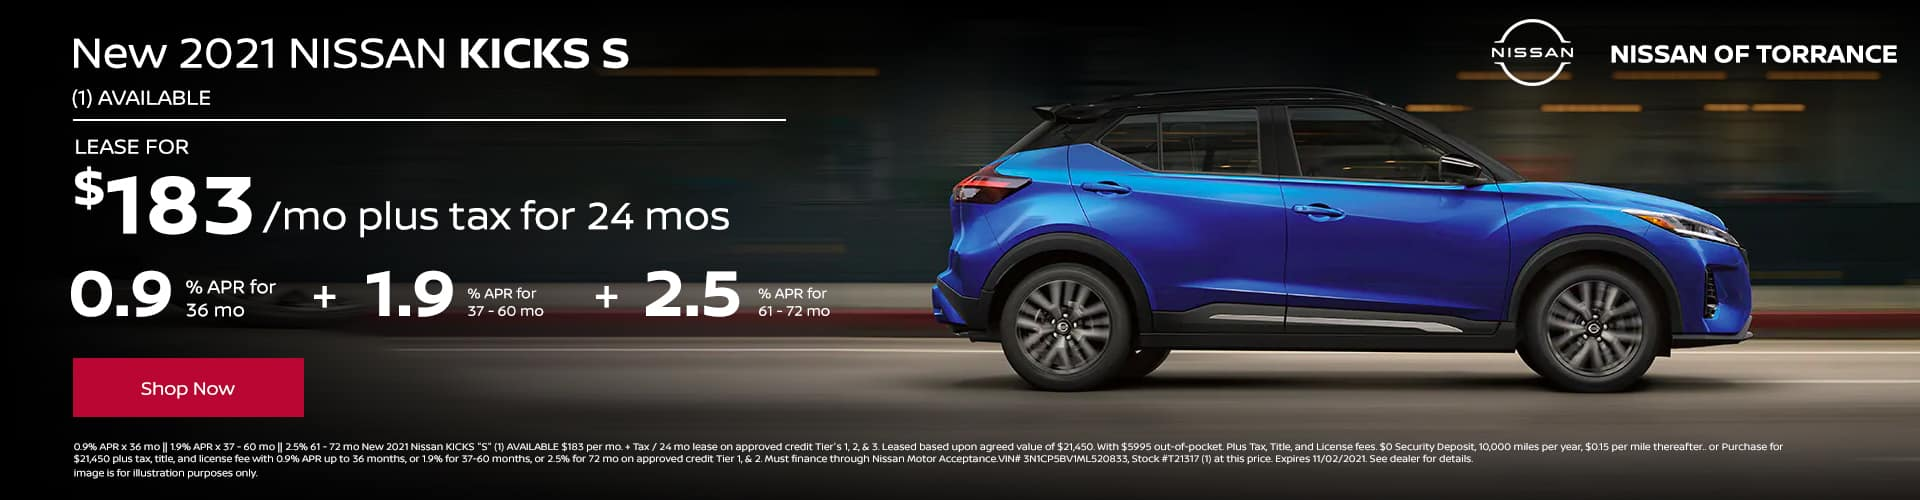 New 2021 Nissan KICKS S (1) AVAILABLE Lease for $183 per mo plus tax for 24 mo. OR 0.9% APR for 36 mo || 1.9% APR for 37 - 60 mo || 2.5% APR for 61 - 72 mo